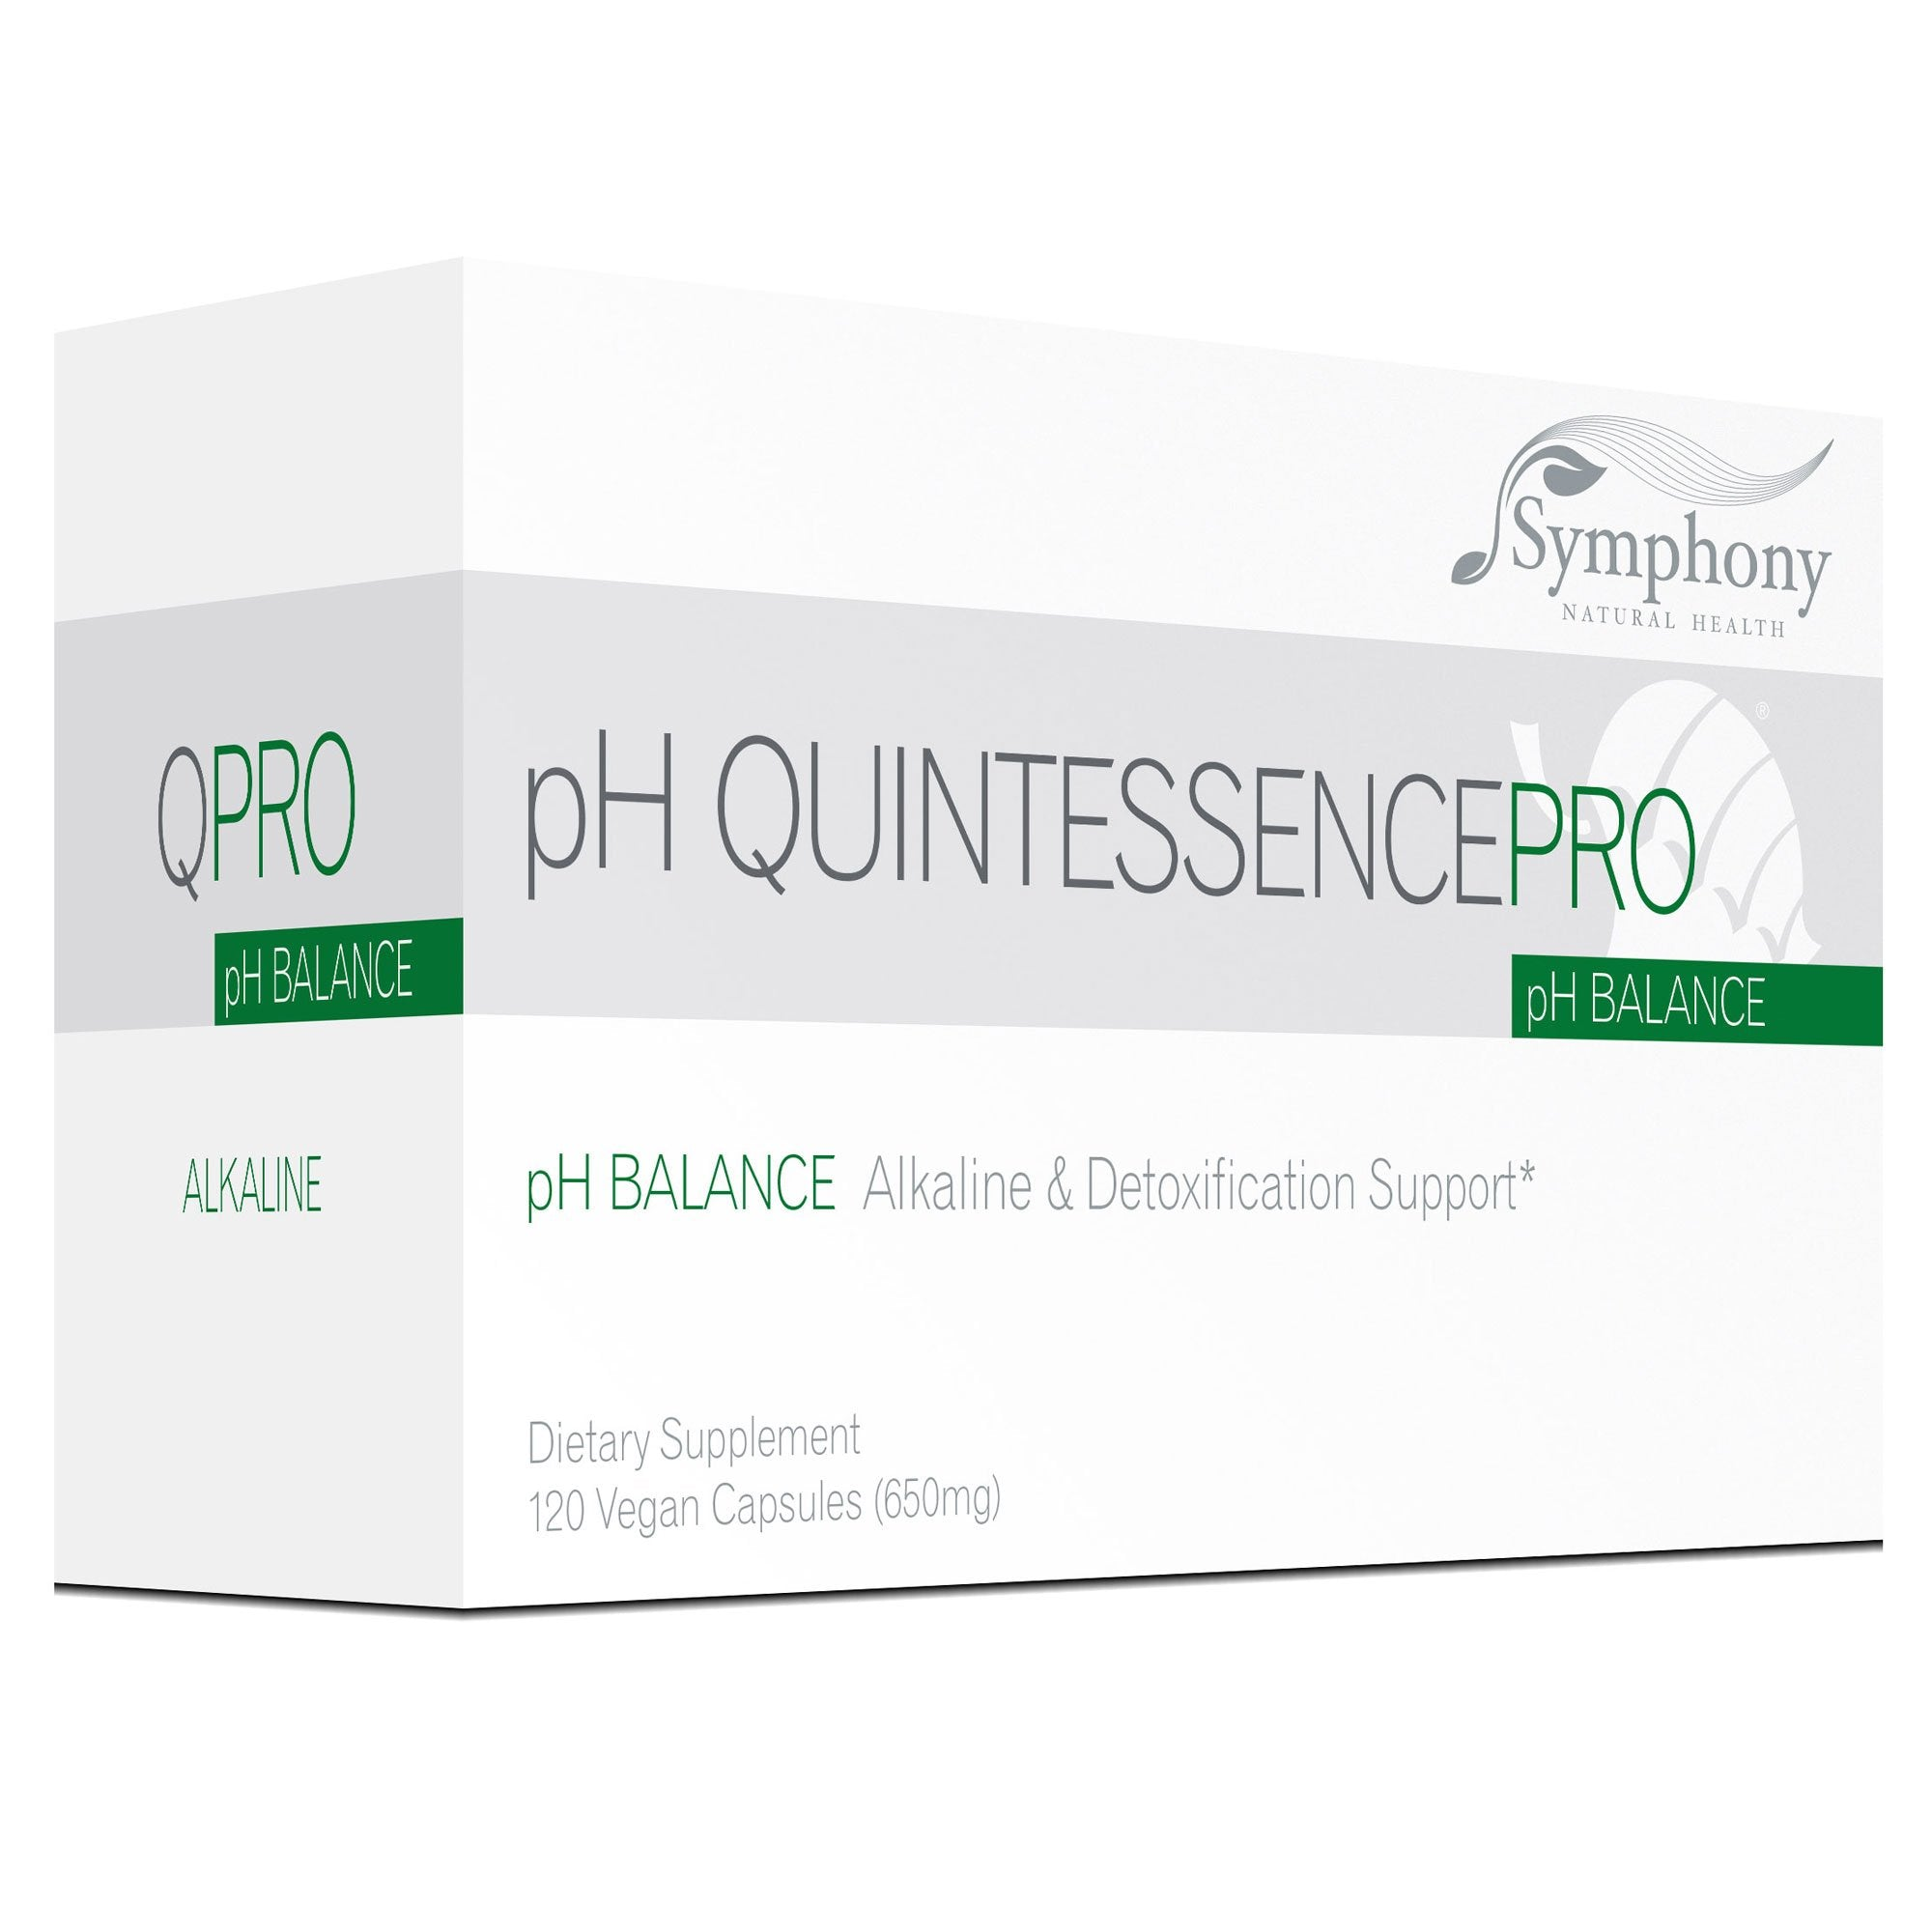 pH QuintessencePRO Alkaline & Detoxification support